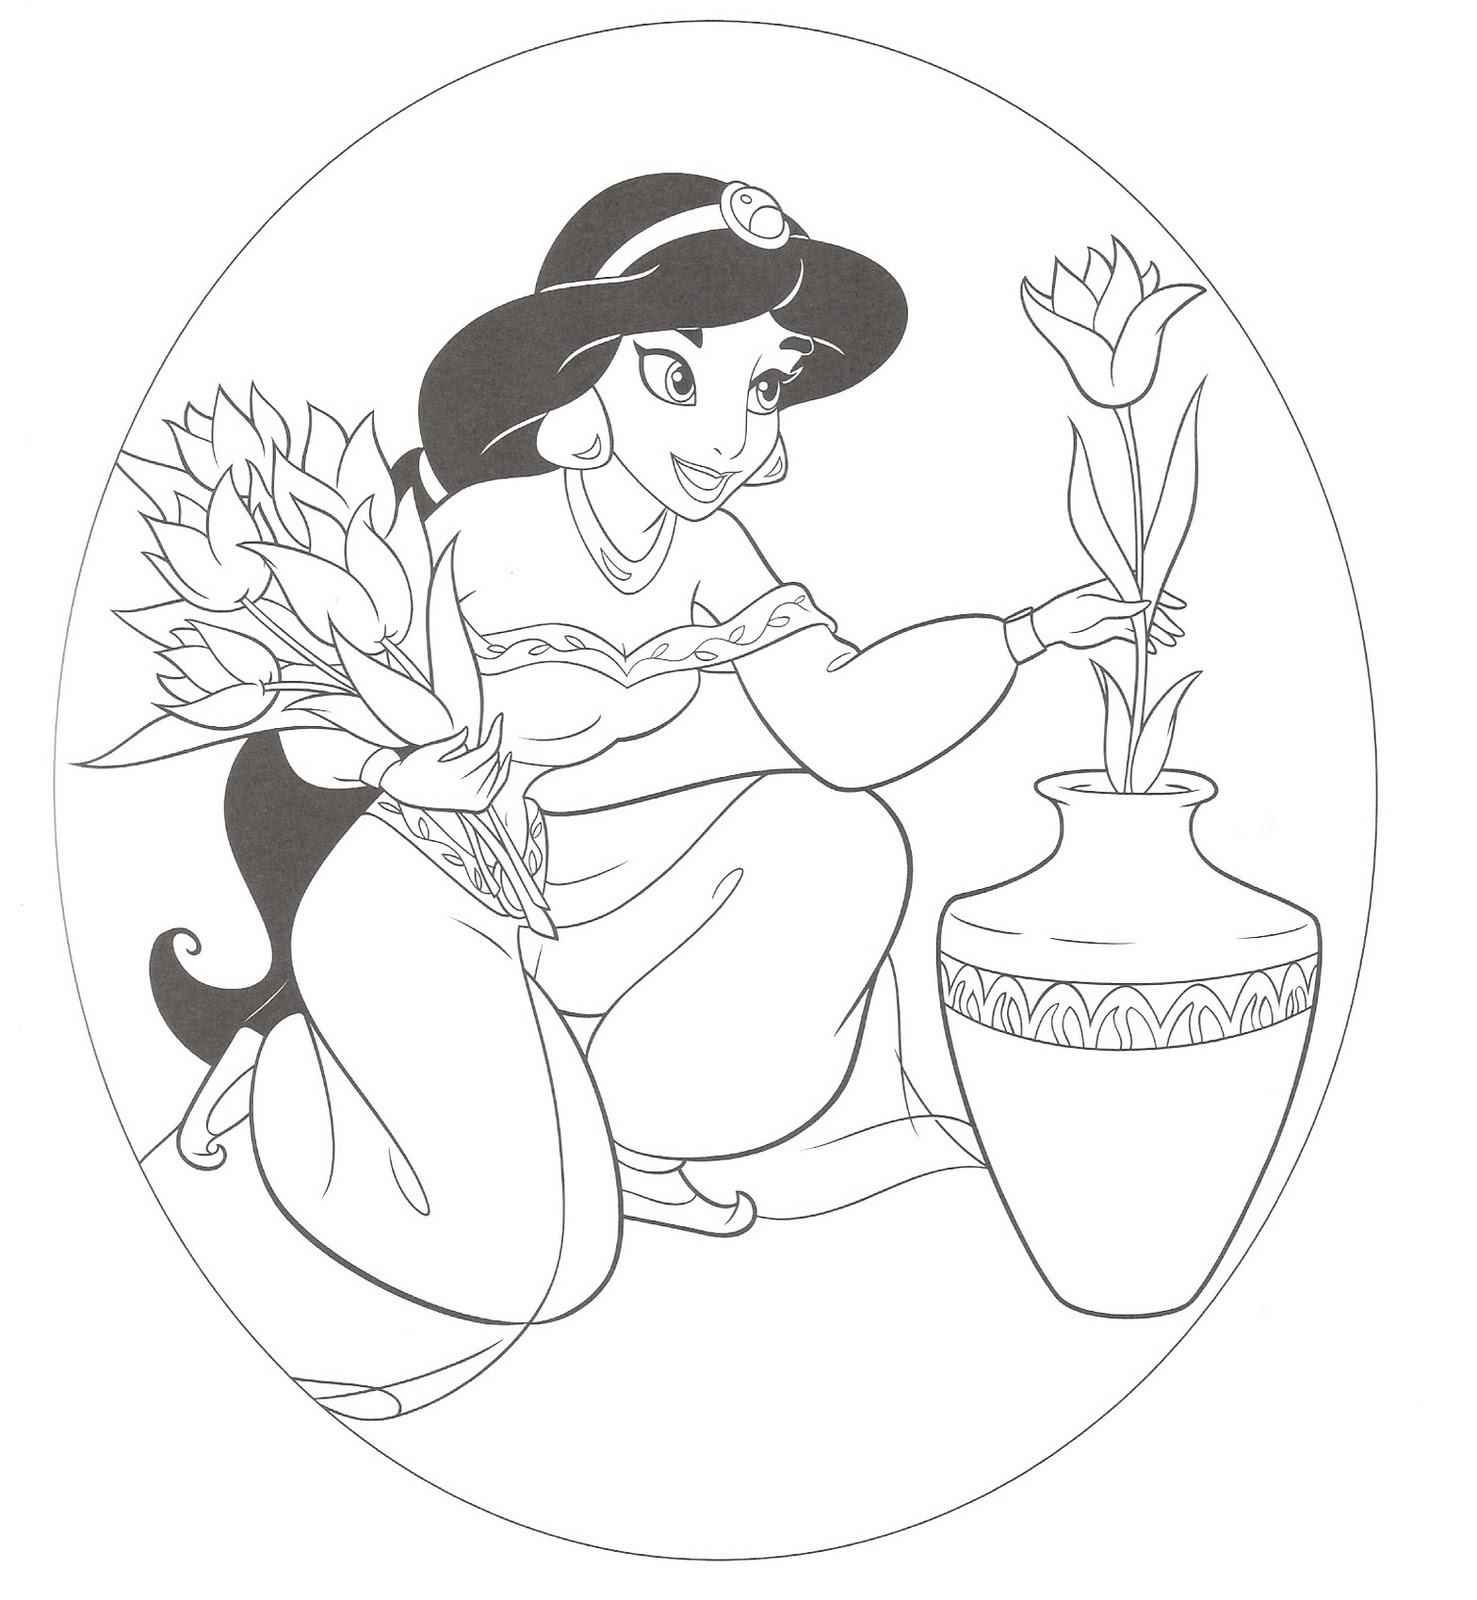 Coloring Book Pages Princess : Disney princess coloring pages for kids